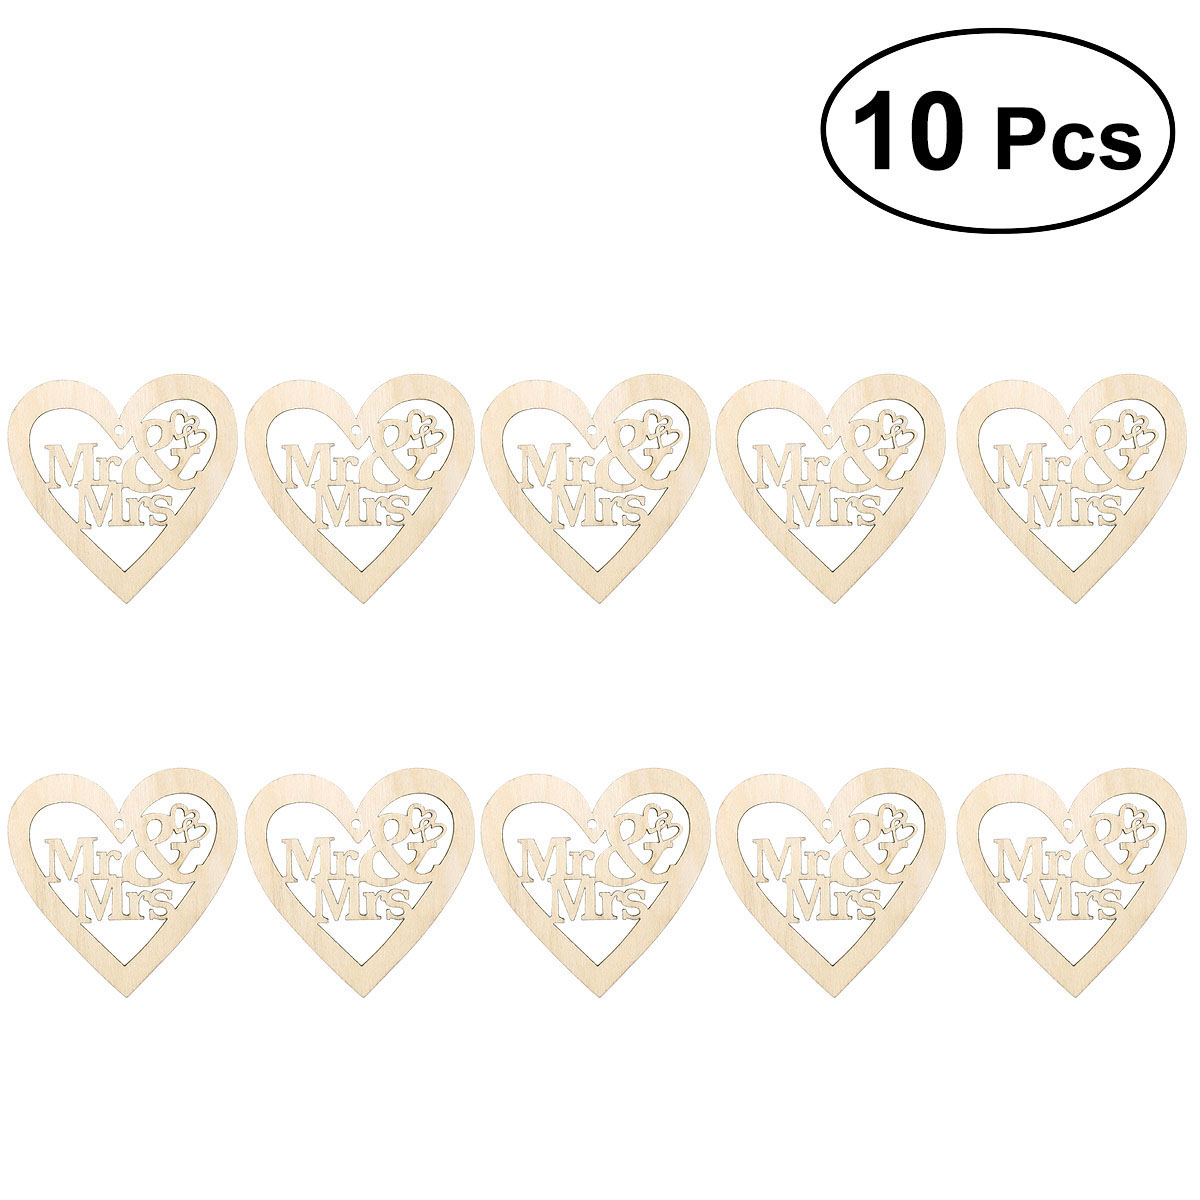 Us 1 63 39 Off 10pcs Hollow Wooden Love Heart Shape Hanging Ornament Rustic Wedding Decoration Scrapbooking Crafts Home Decor With String In Wood